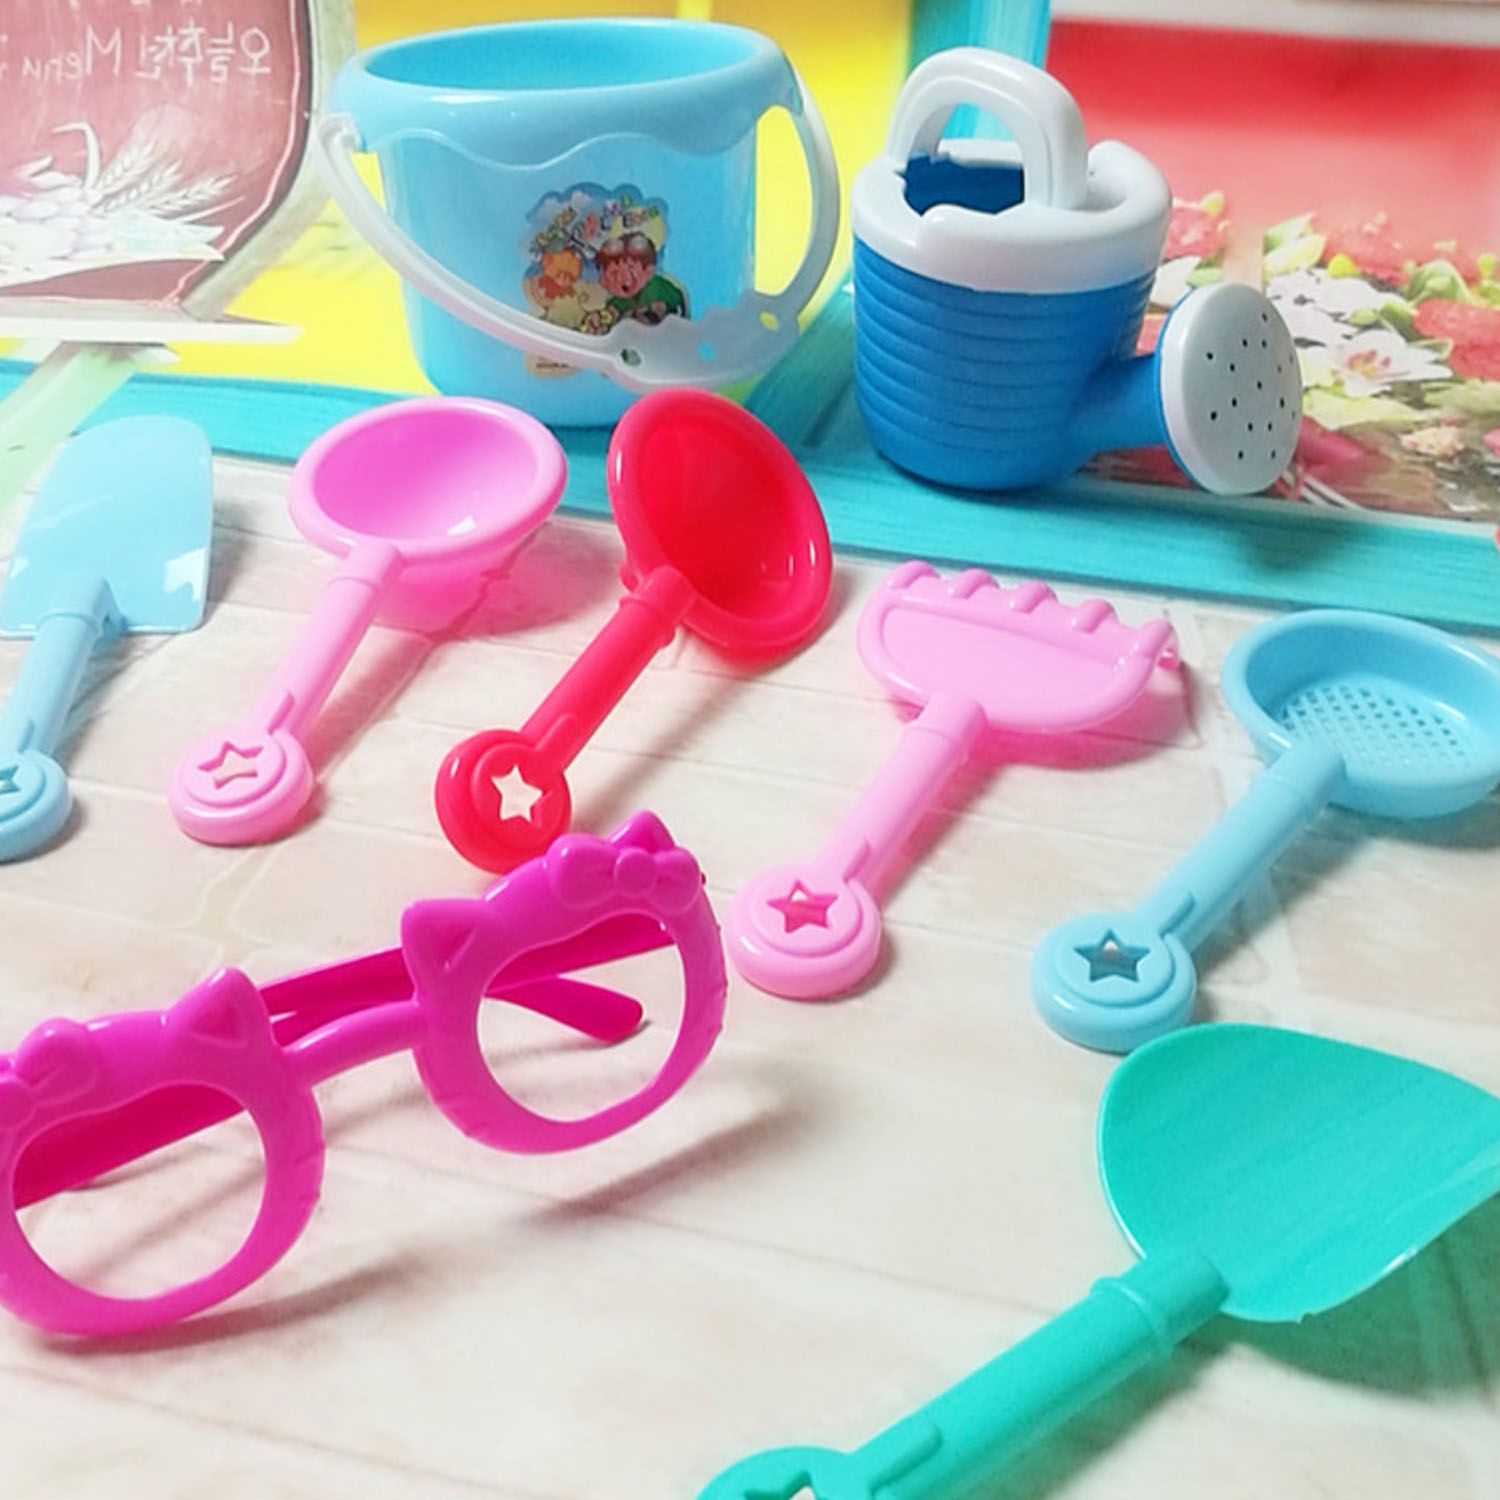 9pcs Funny Kids Beach Pretend Playset Role Play Toys Kit Sand Game Toy Set Including Shovels Hourglass Bucket Sunglasses